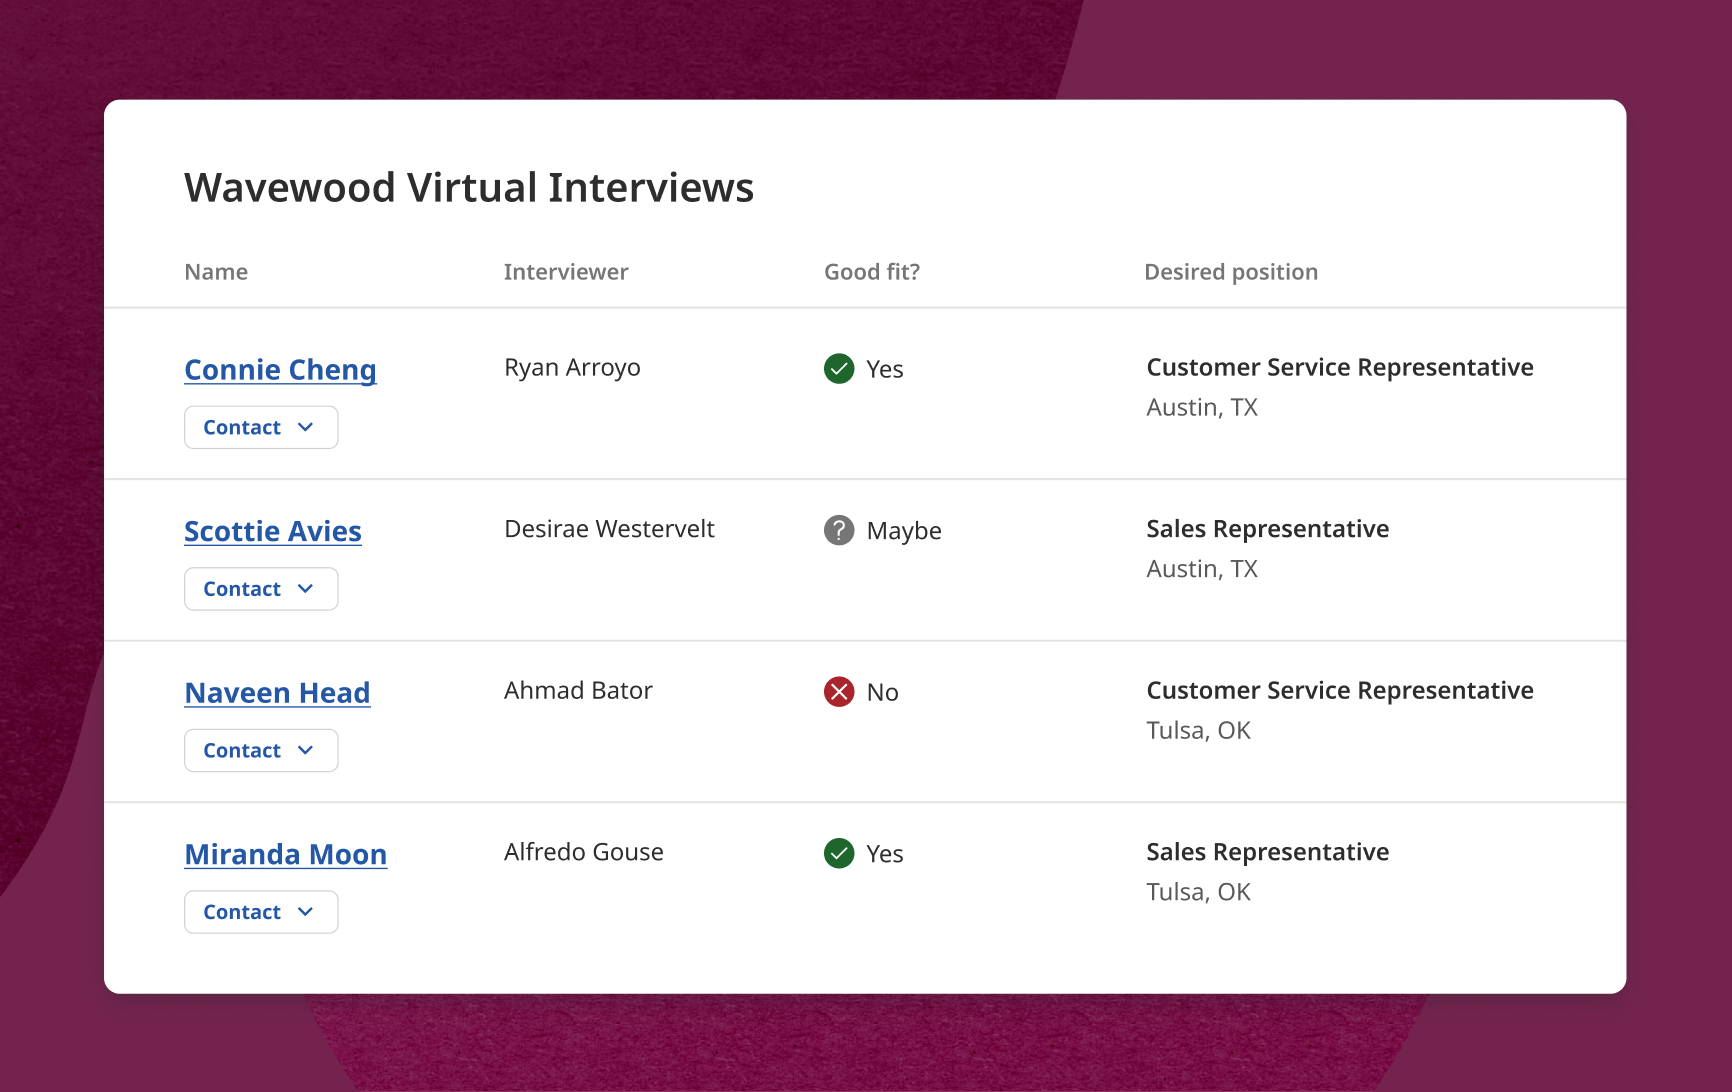 Screenshot of the interview lobby on the hiring platform. The employer can review candidates names, who interviewed them, the job role interviewed for, and whether the candidate is a good fit for the job role.